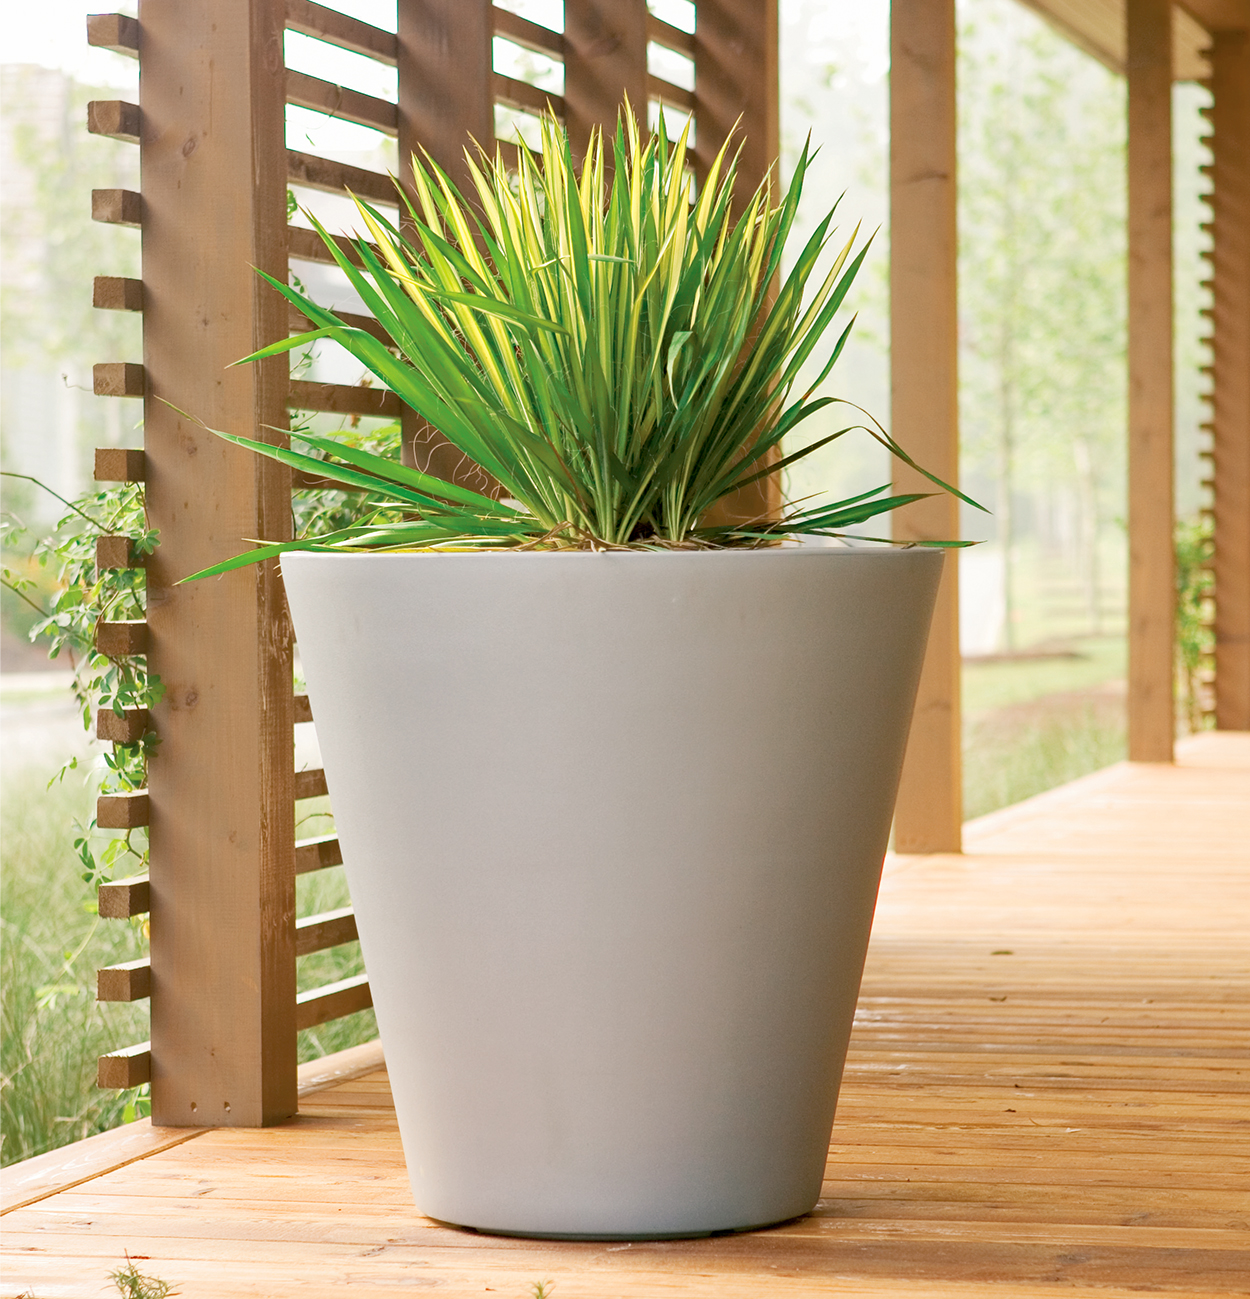 Yucca in container on porch